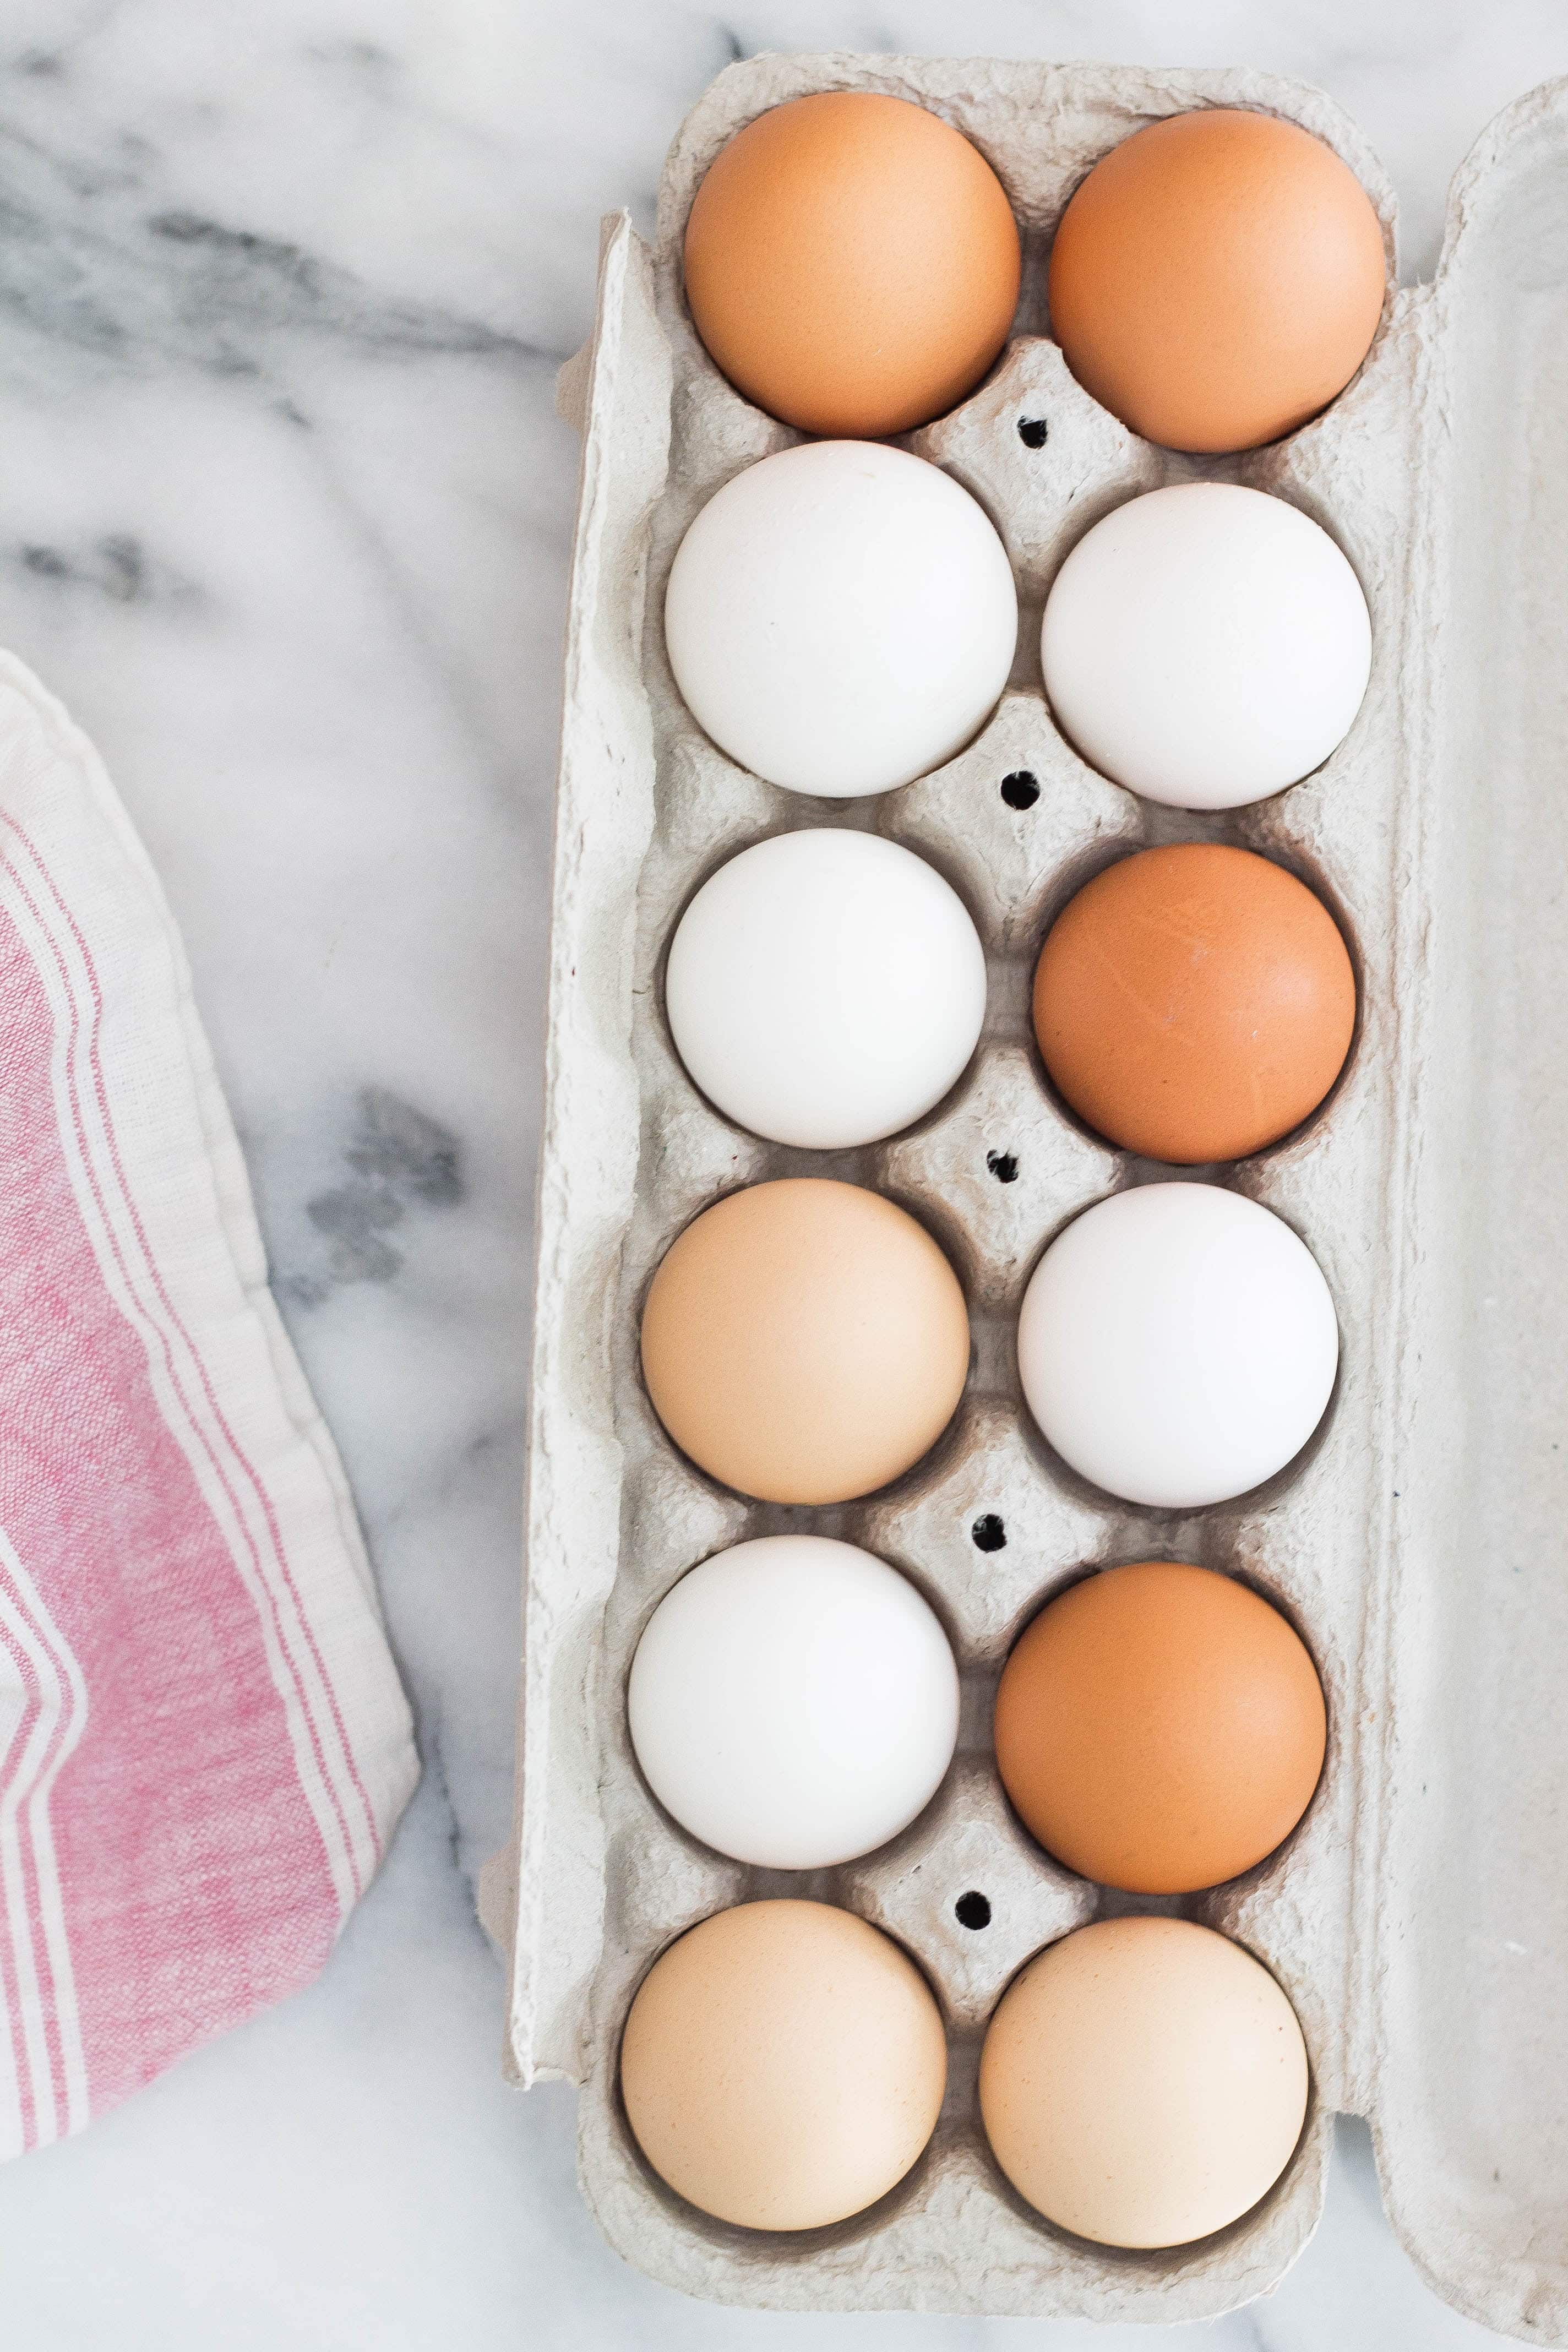 white and brown eggs in a container on a marble counter